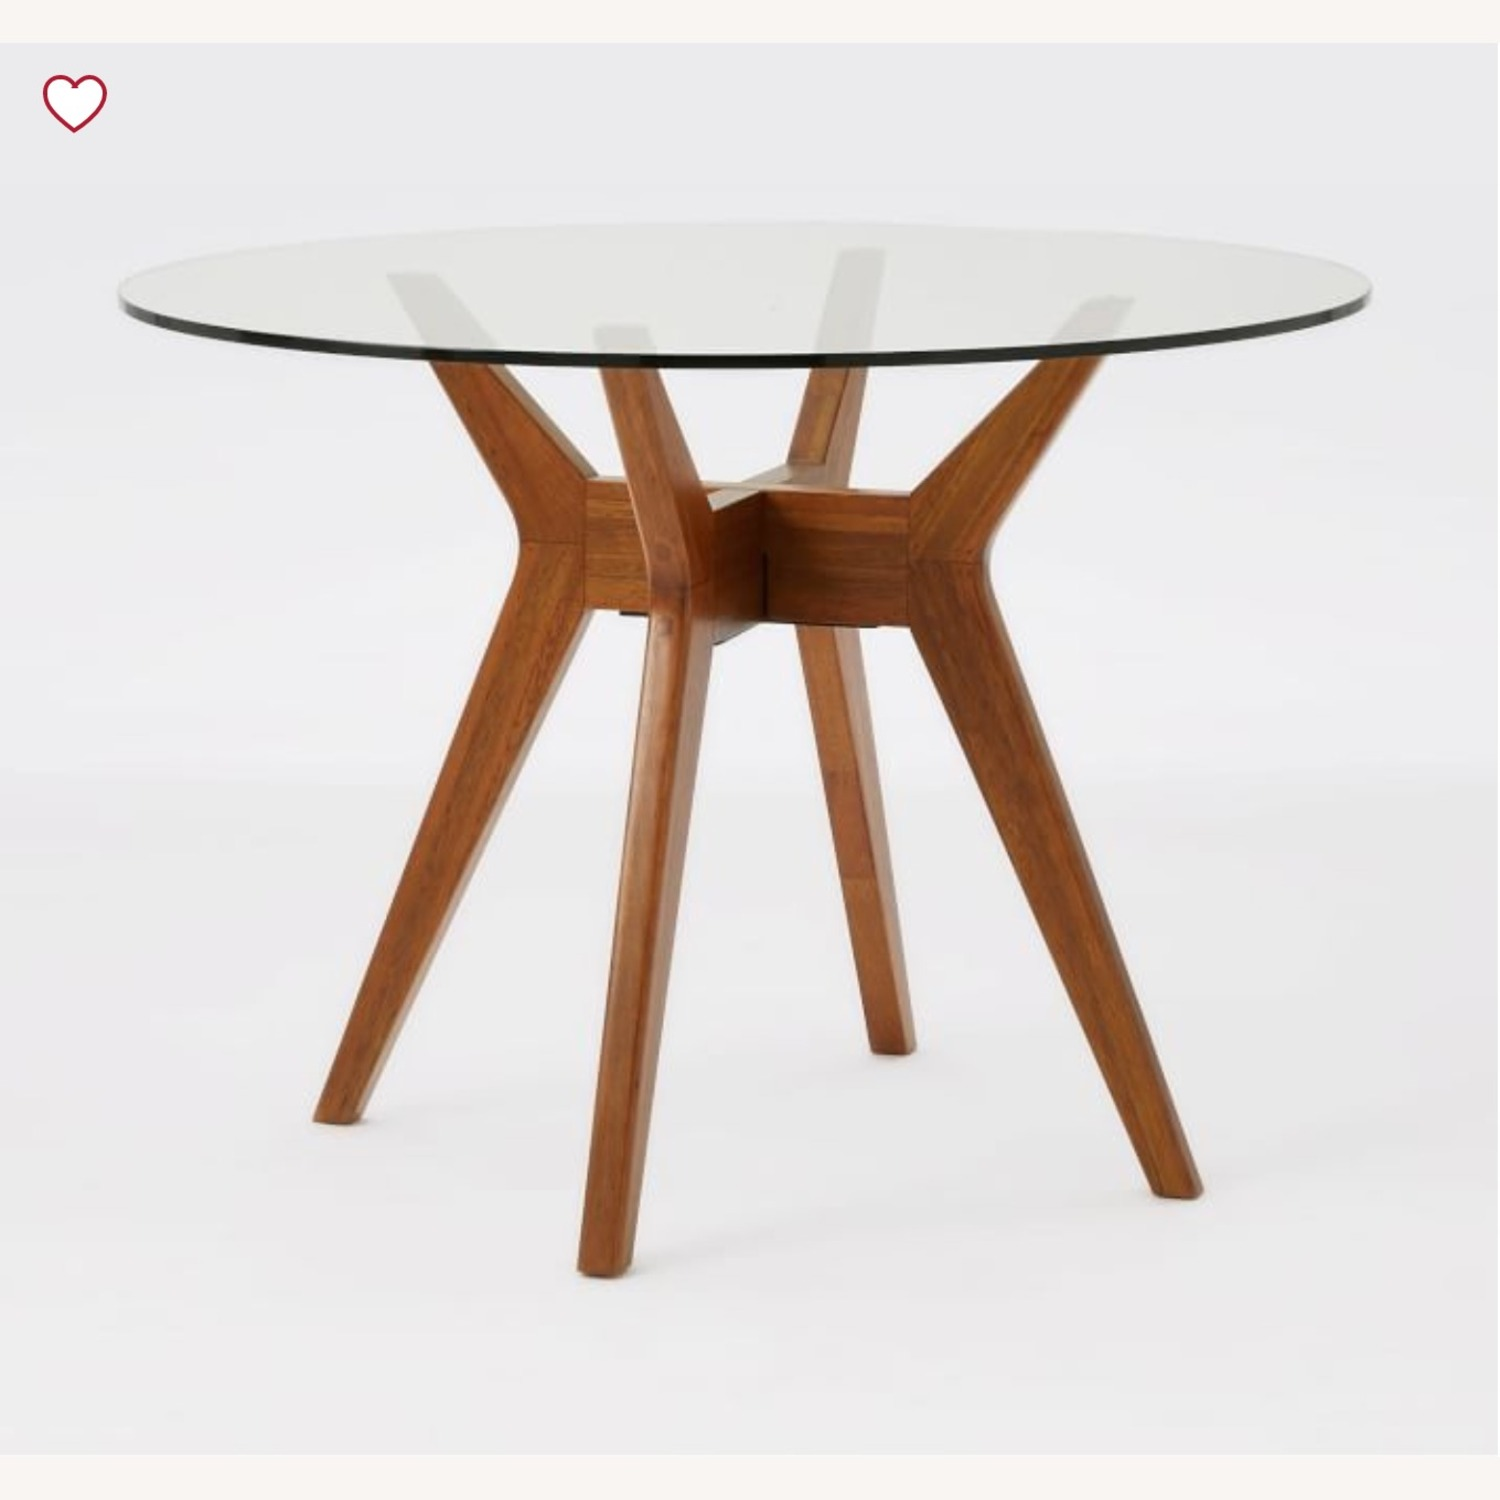 West Elm Mid-Century Dining Table - image-1